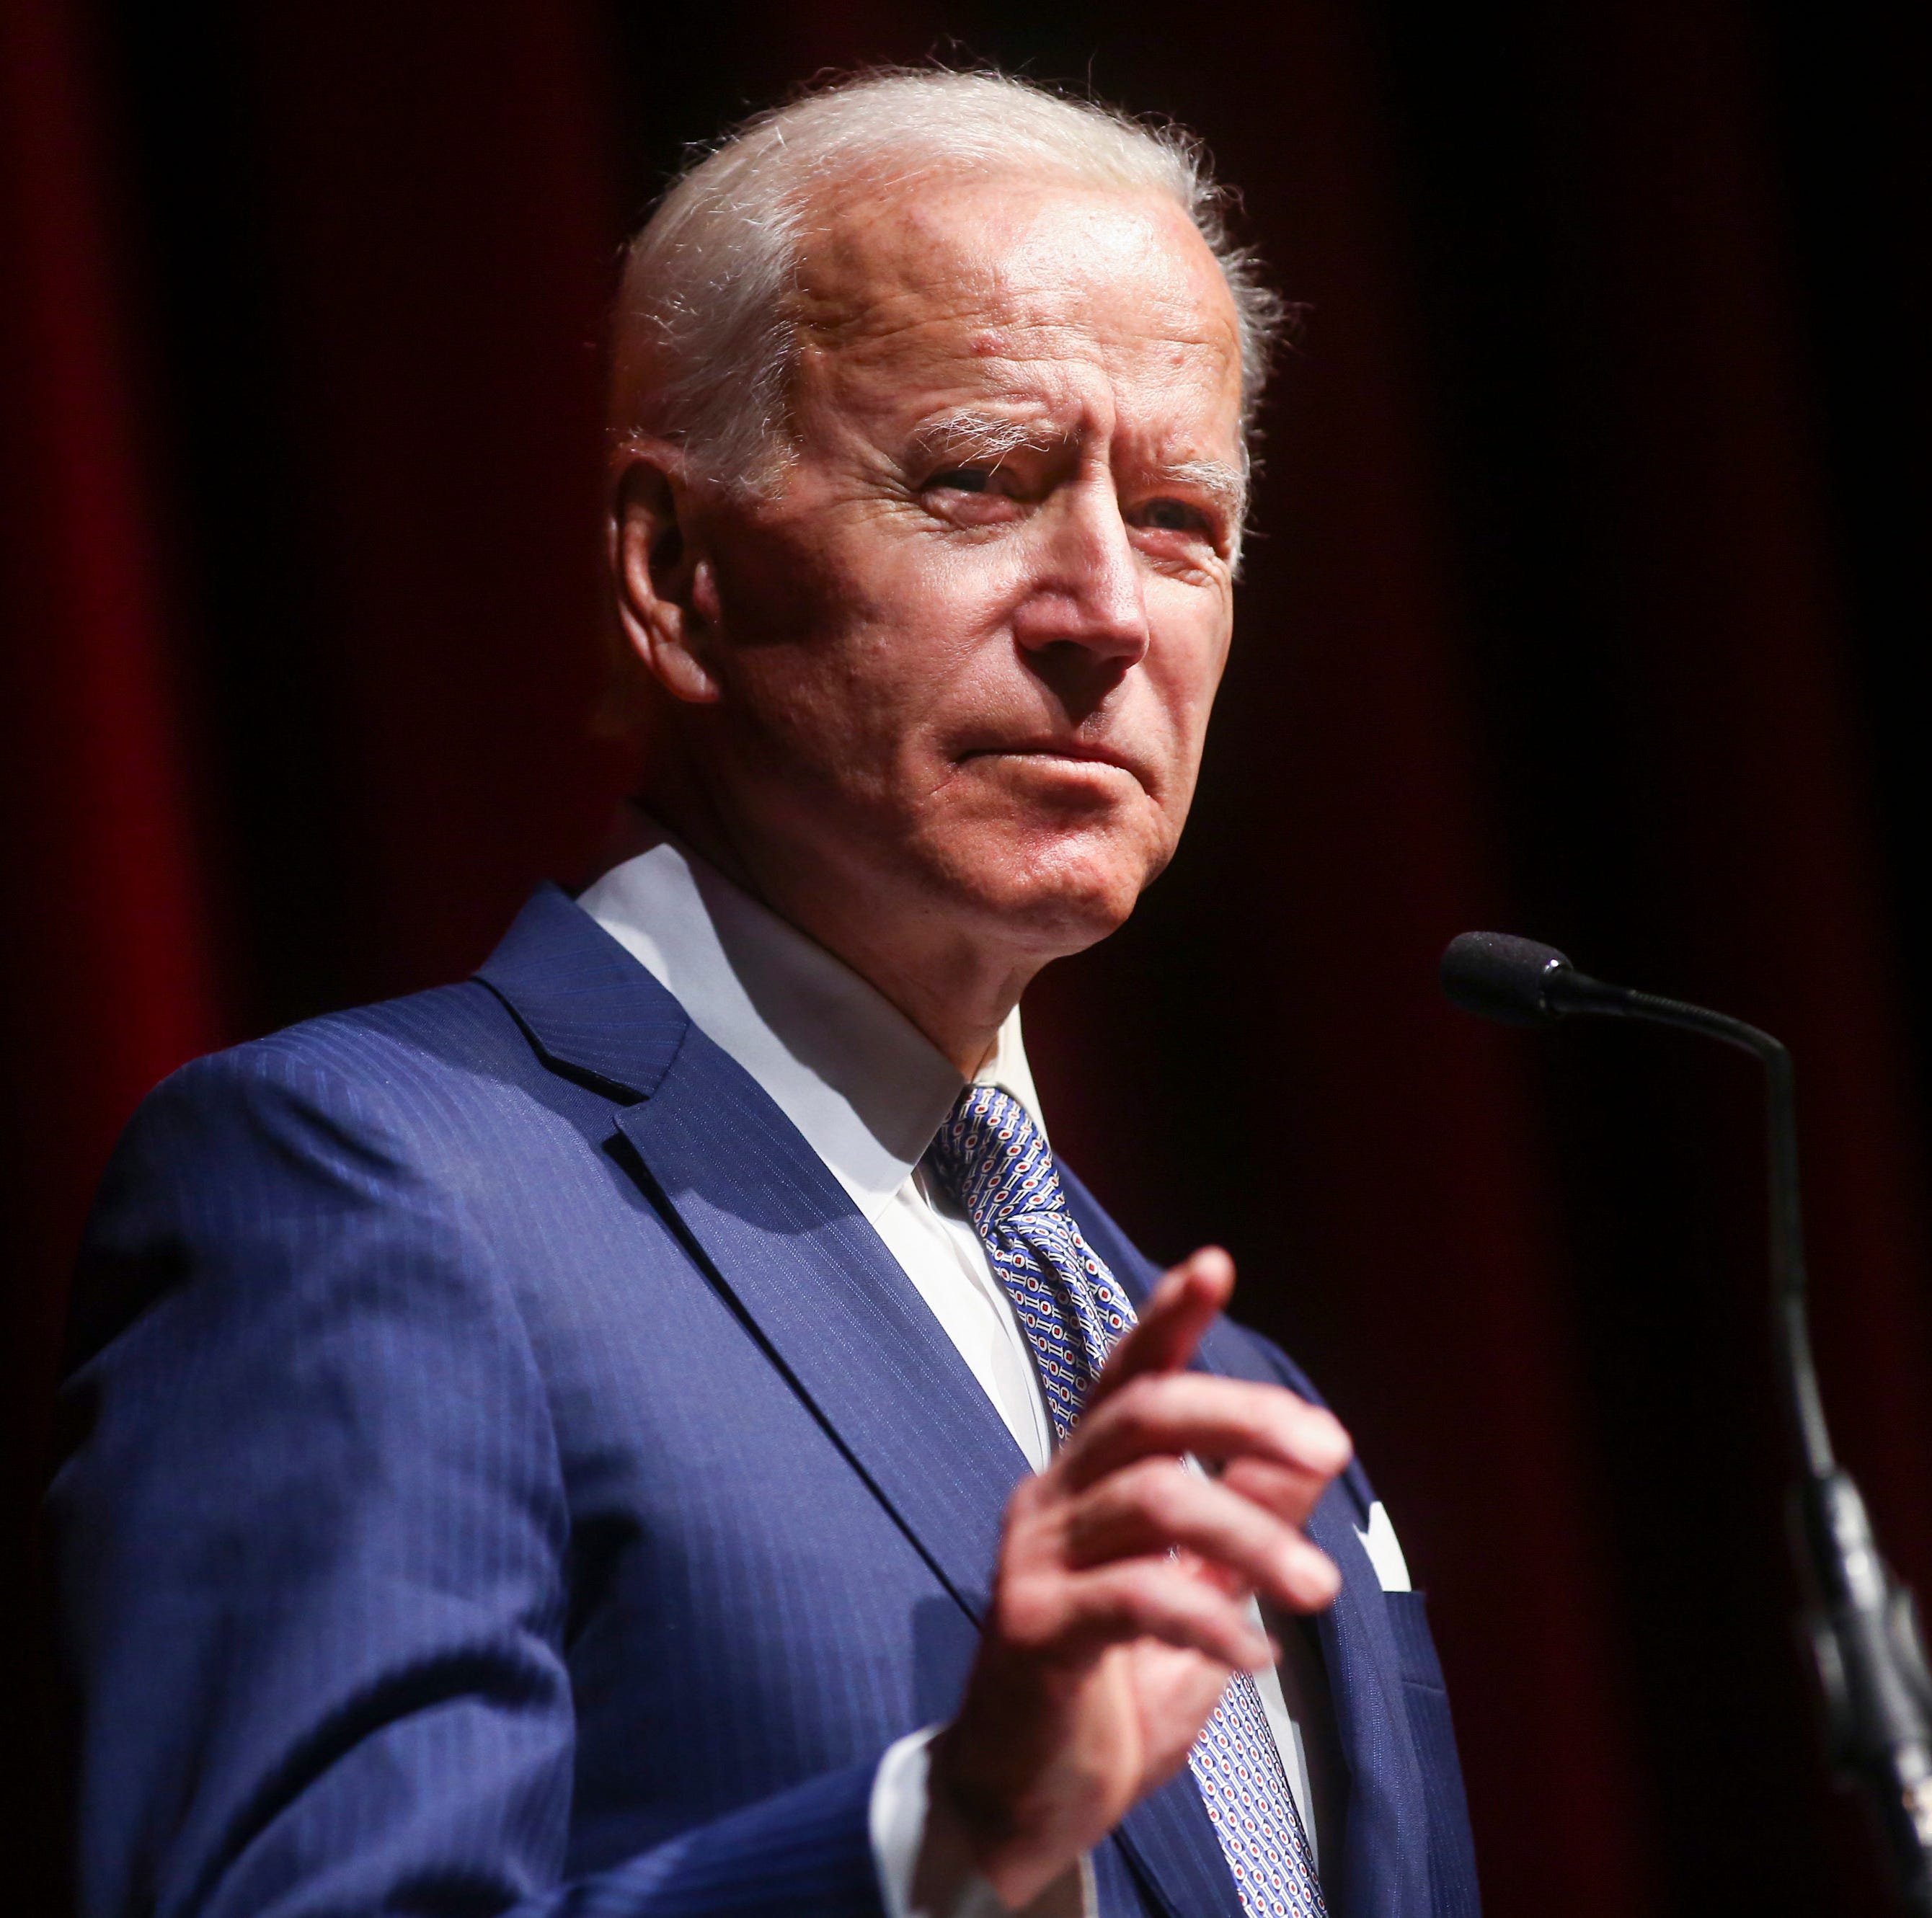 Biden urges political engagement in Brown University speech